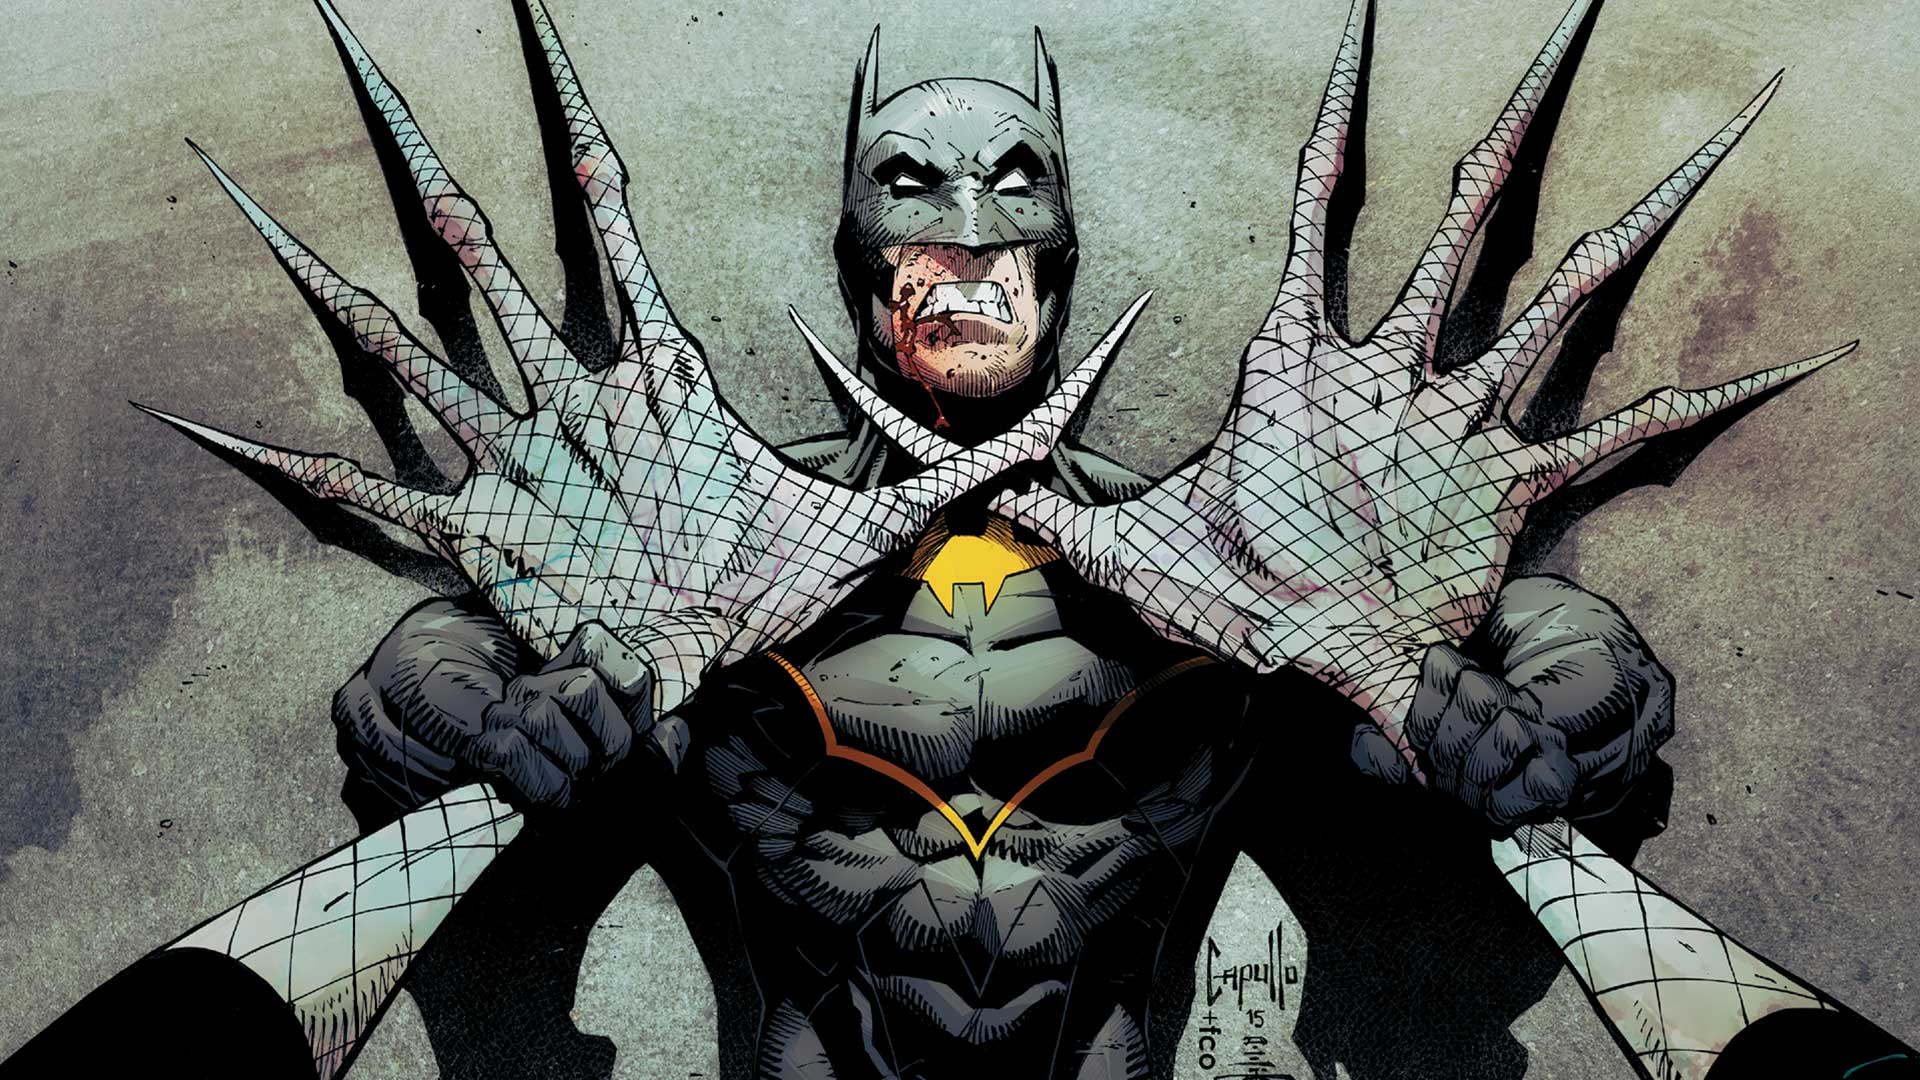 Amazing Batman Pictures & Backgrounds